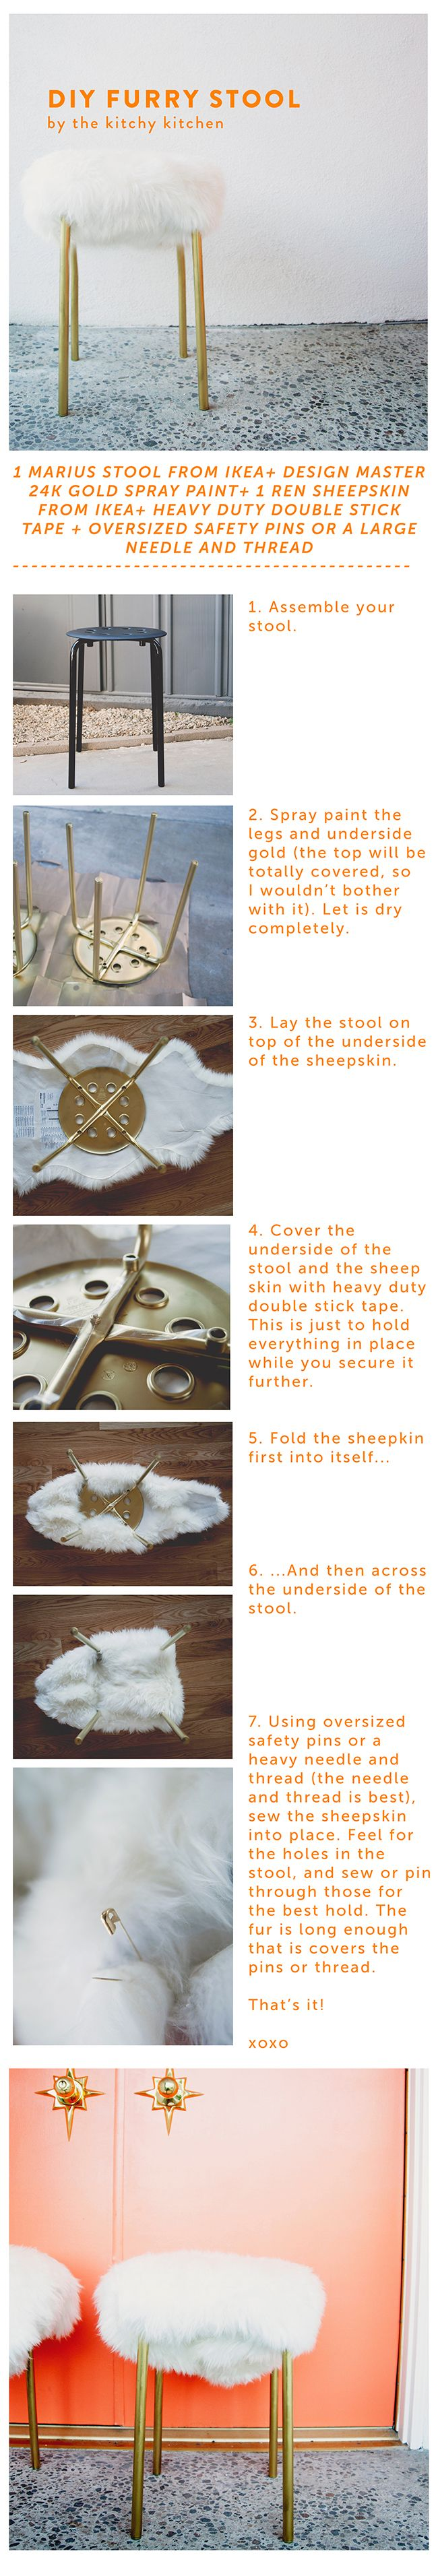 DIY Faux Fur Stool Tutorial